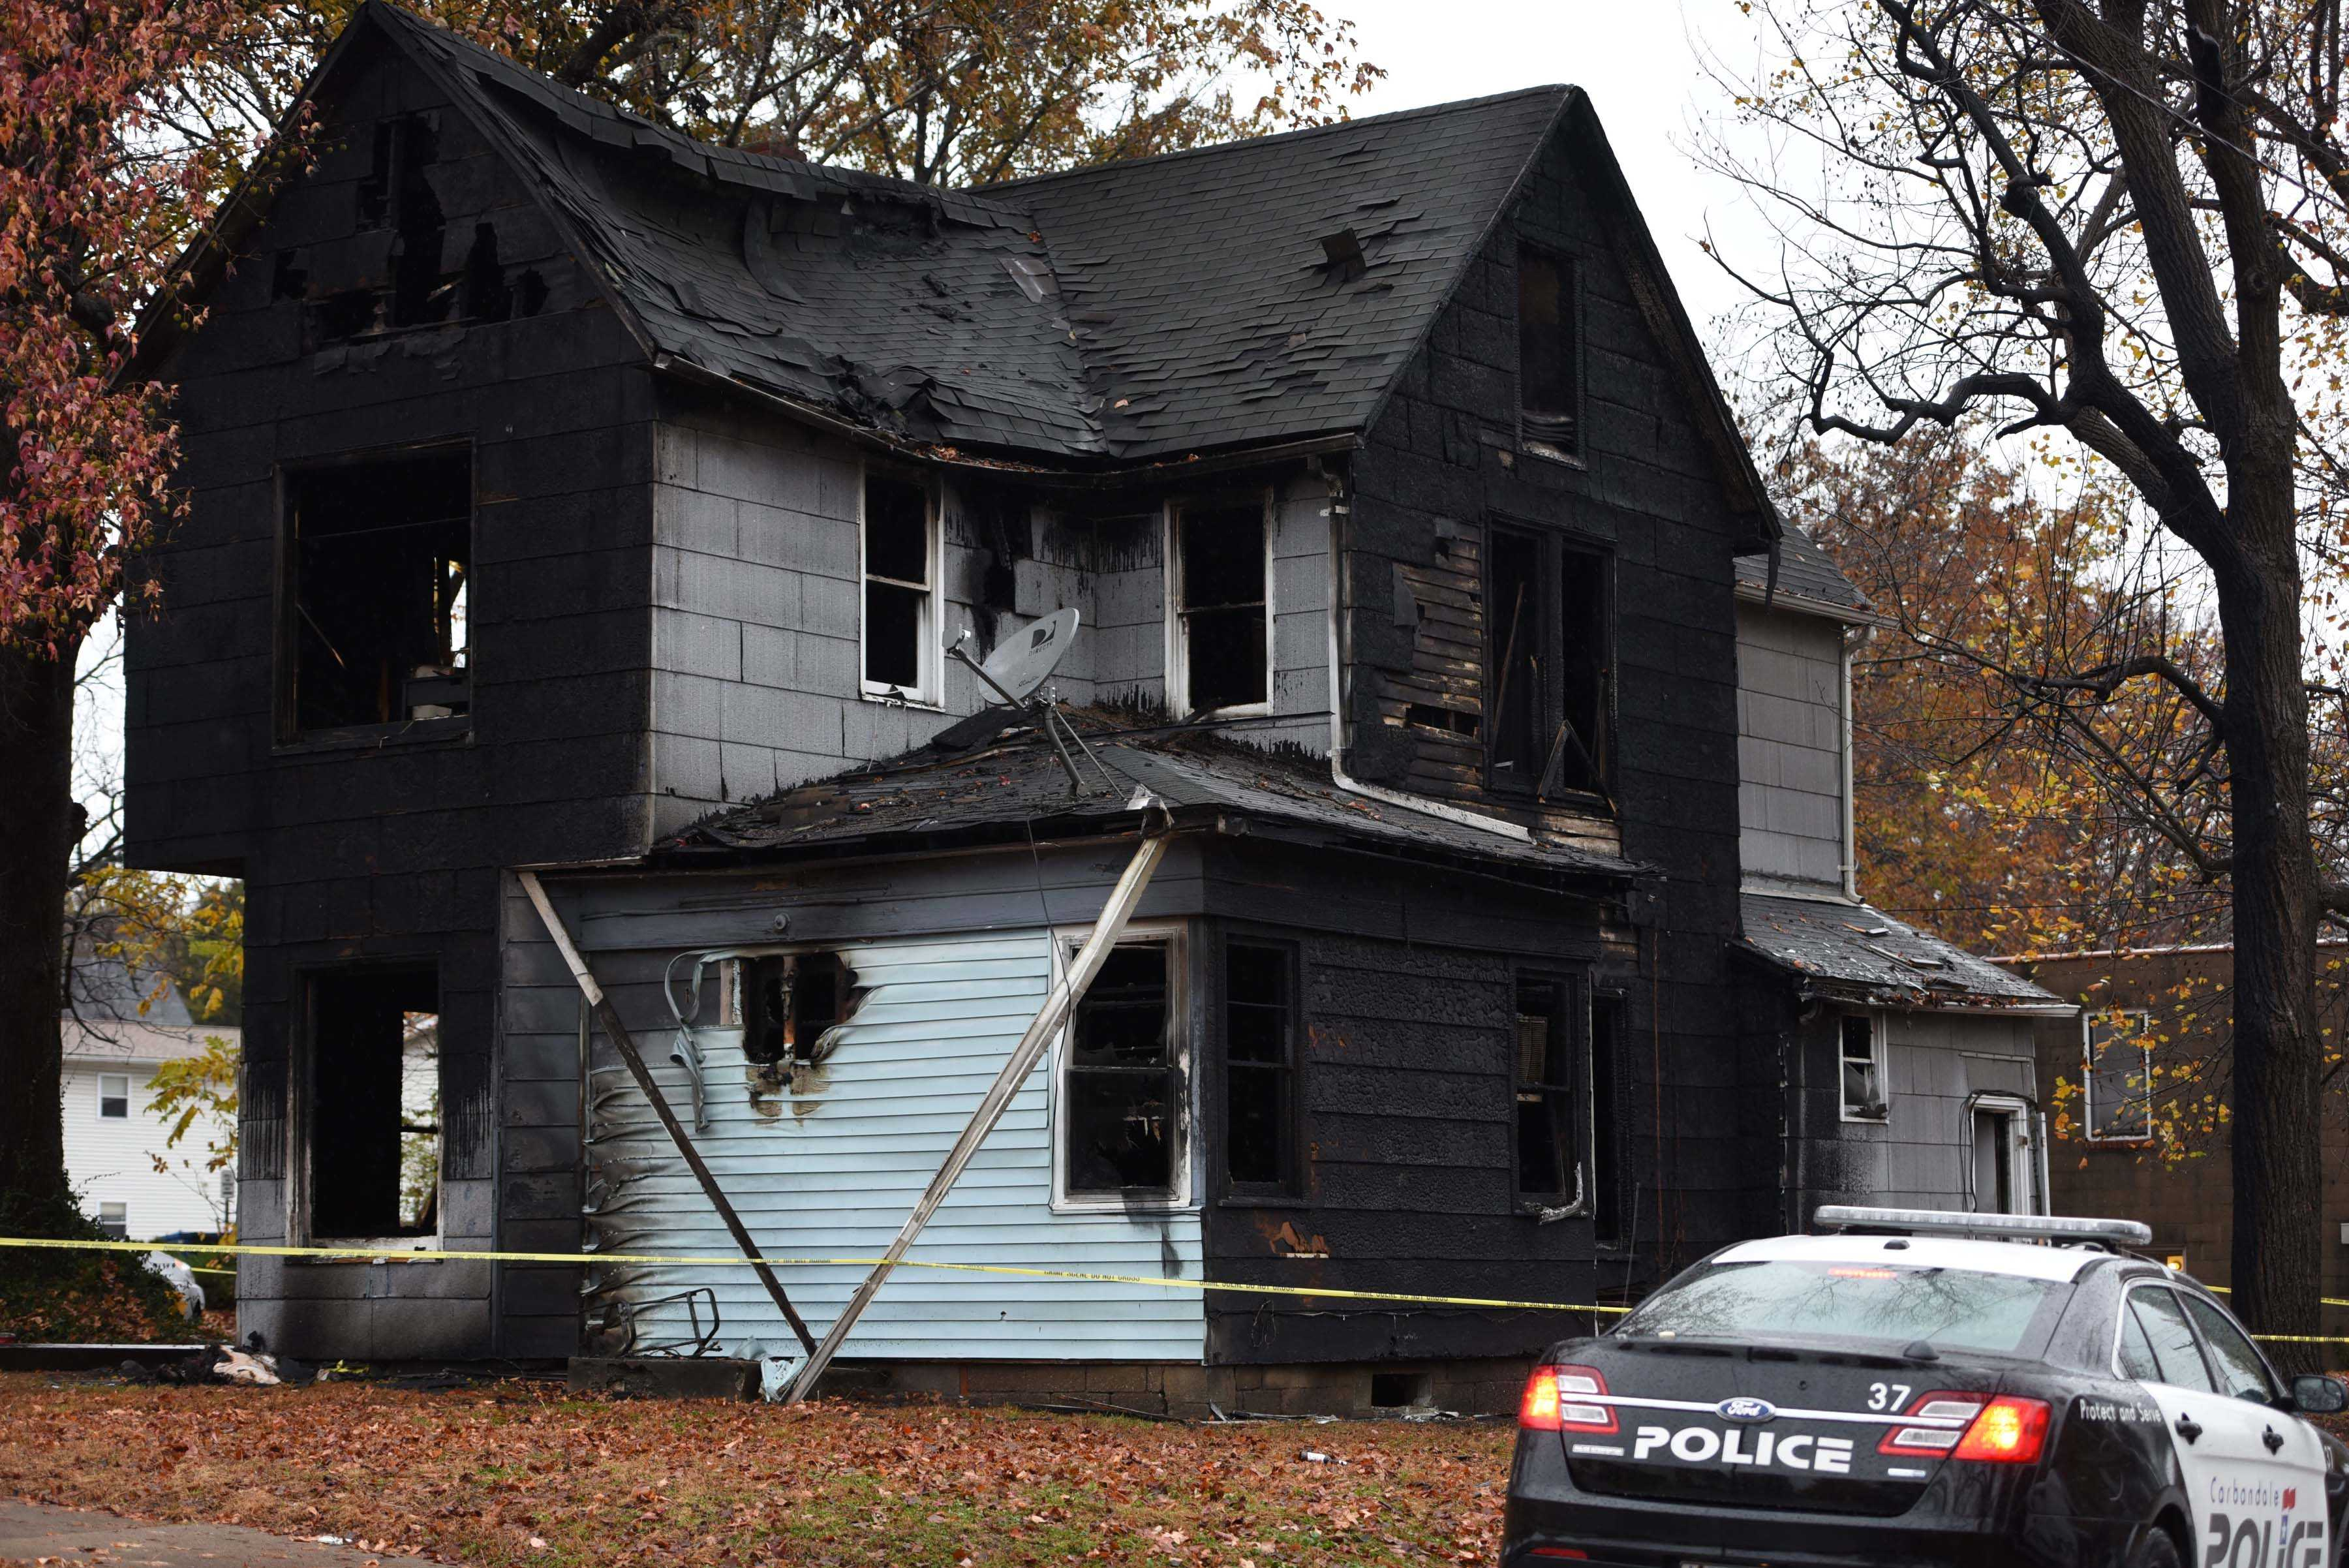 Authorities continue to investigate a fatal structure fire that killed an SIU student Wednesday, Nov. 23, 2016, in the 700 block of West Freeman Street in Carbondale. (Bill Lukitsch | @lukitsbill)